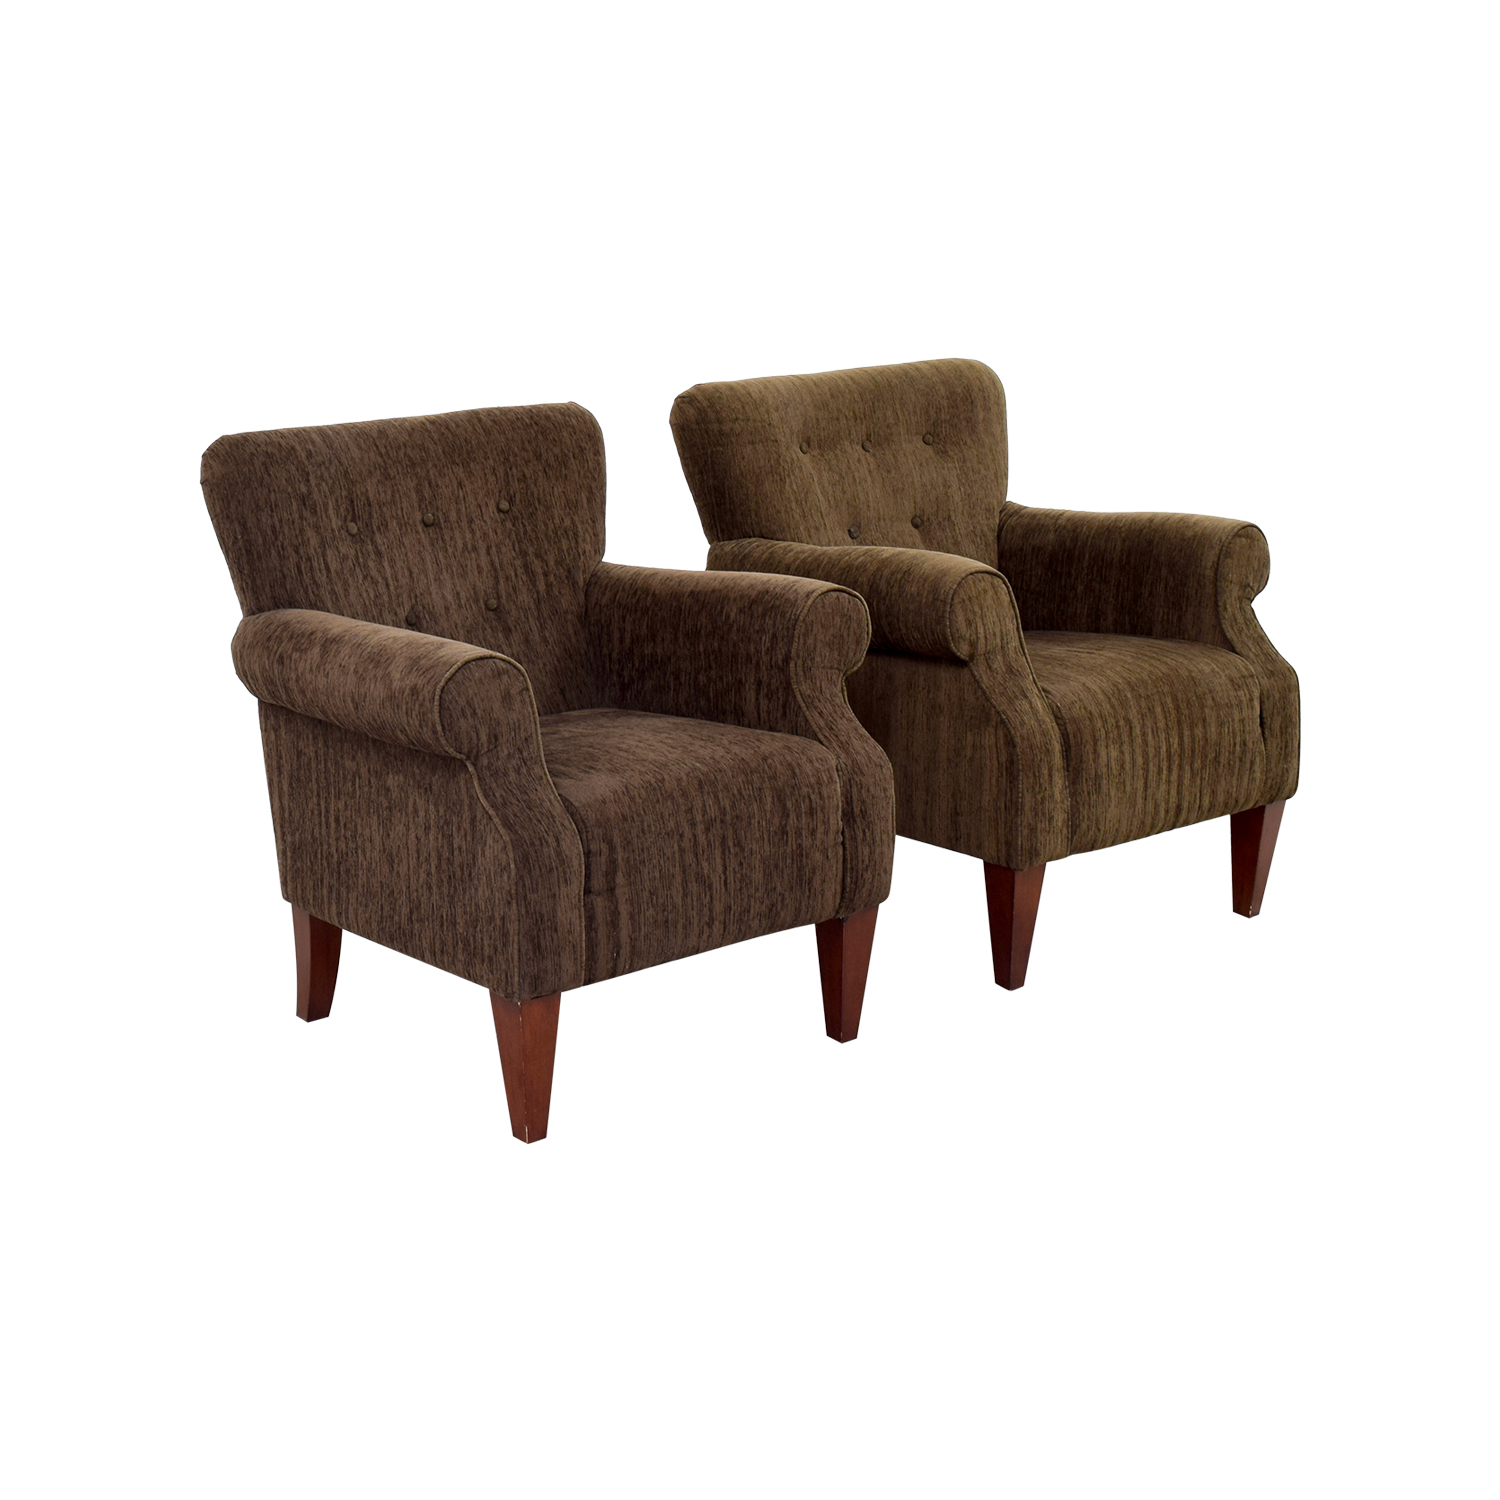 ... Emerald Home Furnishings Emerald Home Furnishings Upholstered Brown  Chairs Used ...